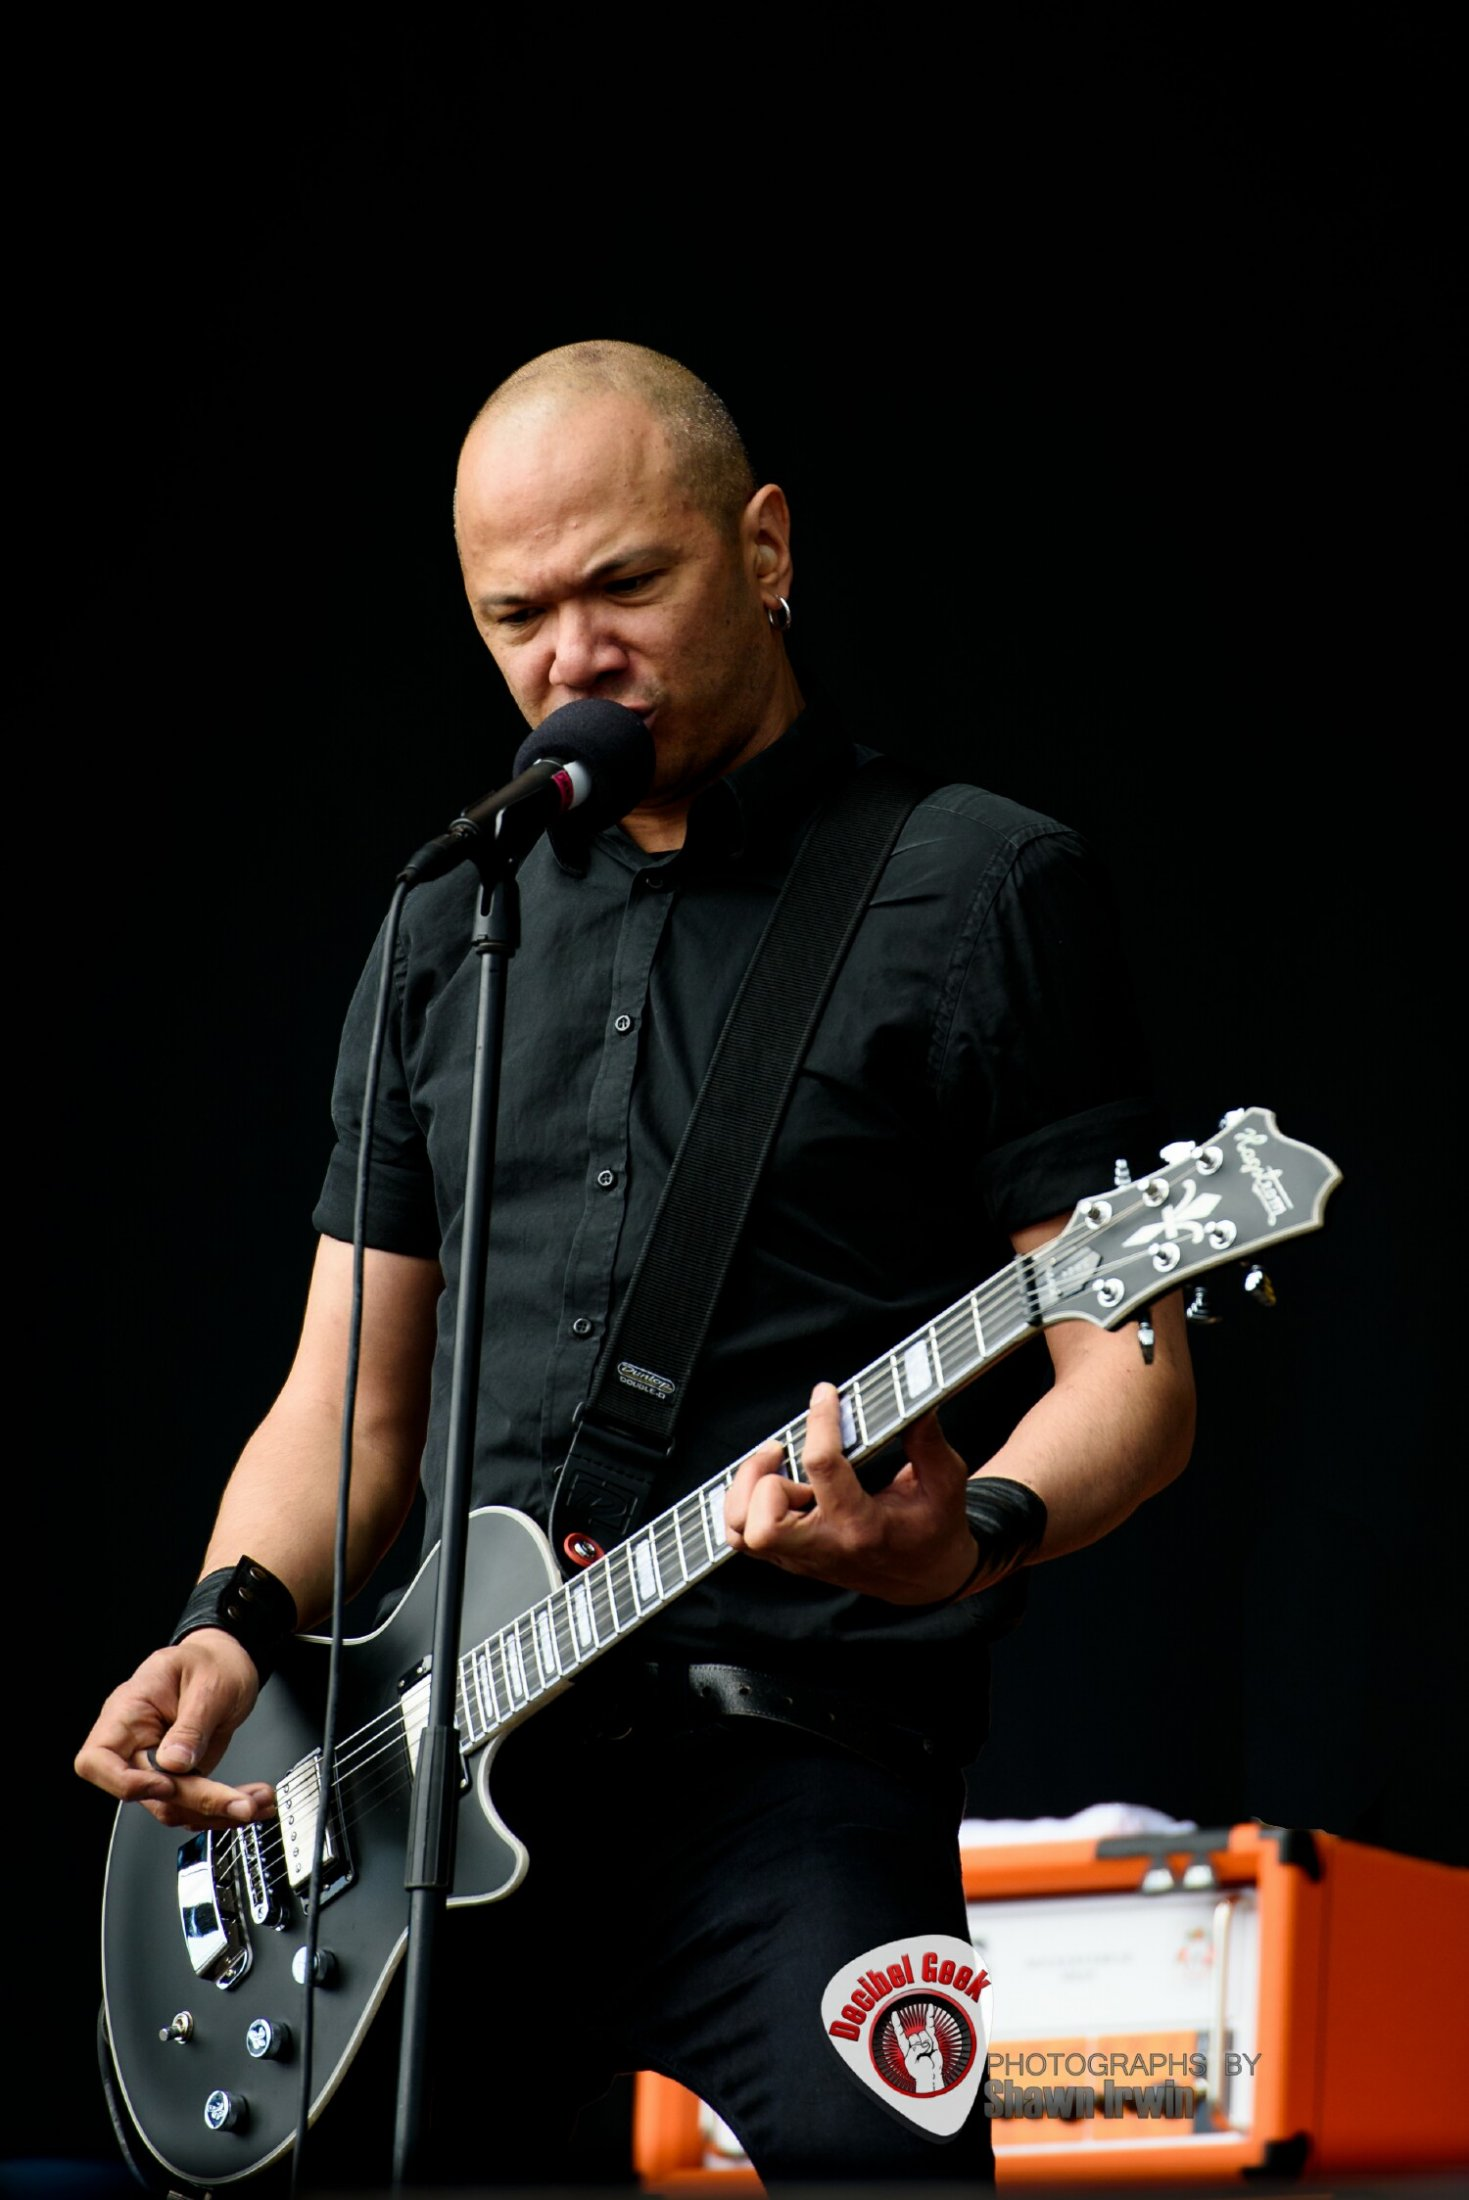 Danko Jones #3-SRF 2019-Shawn Irwin